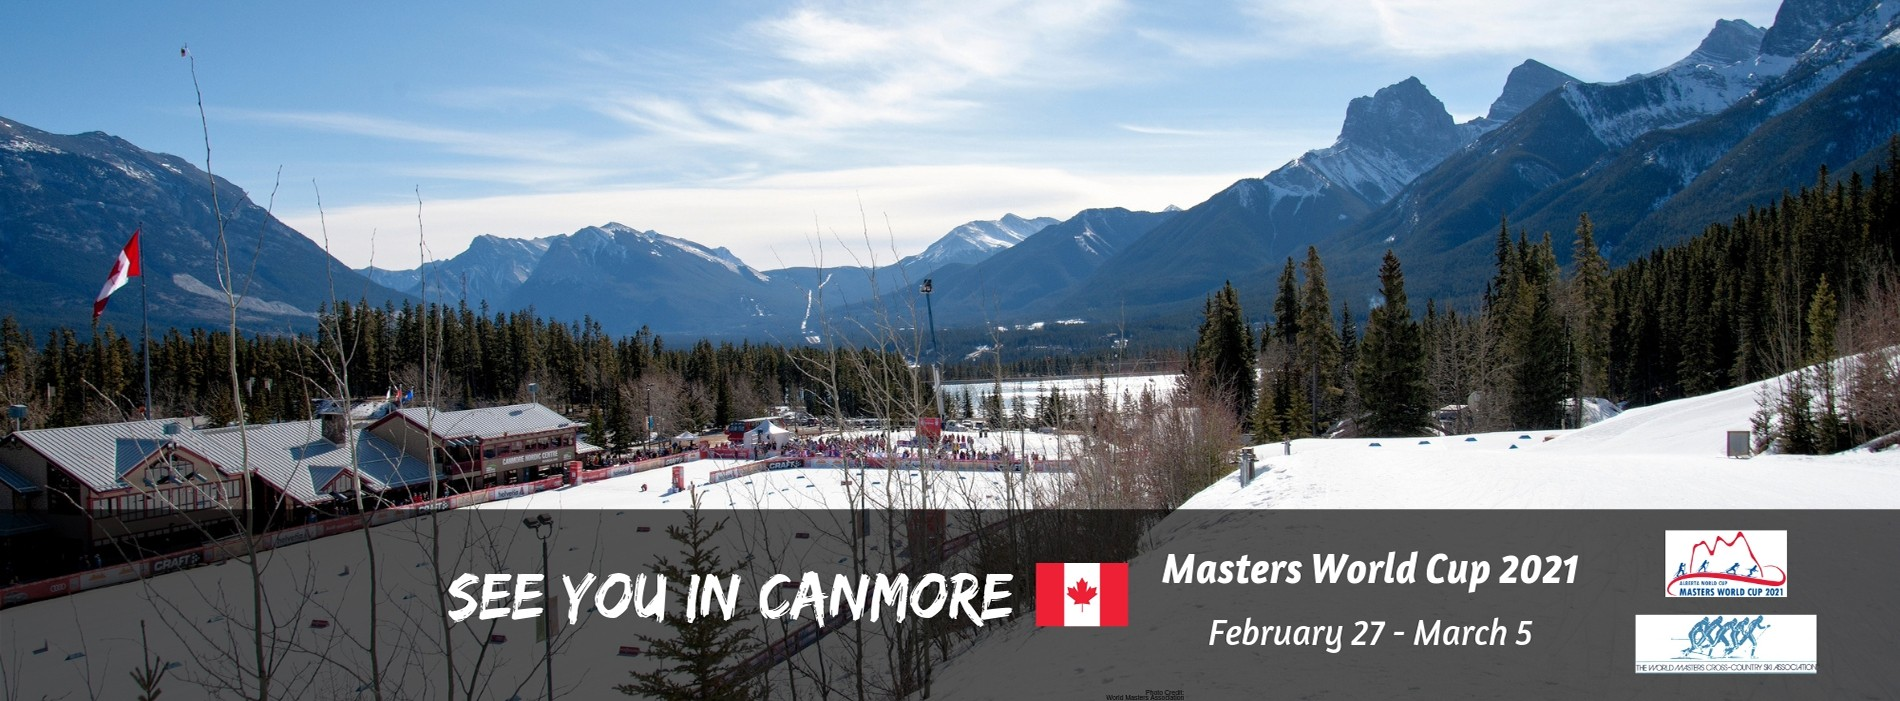 Masters World Cup Canmore Alberta 2021